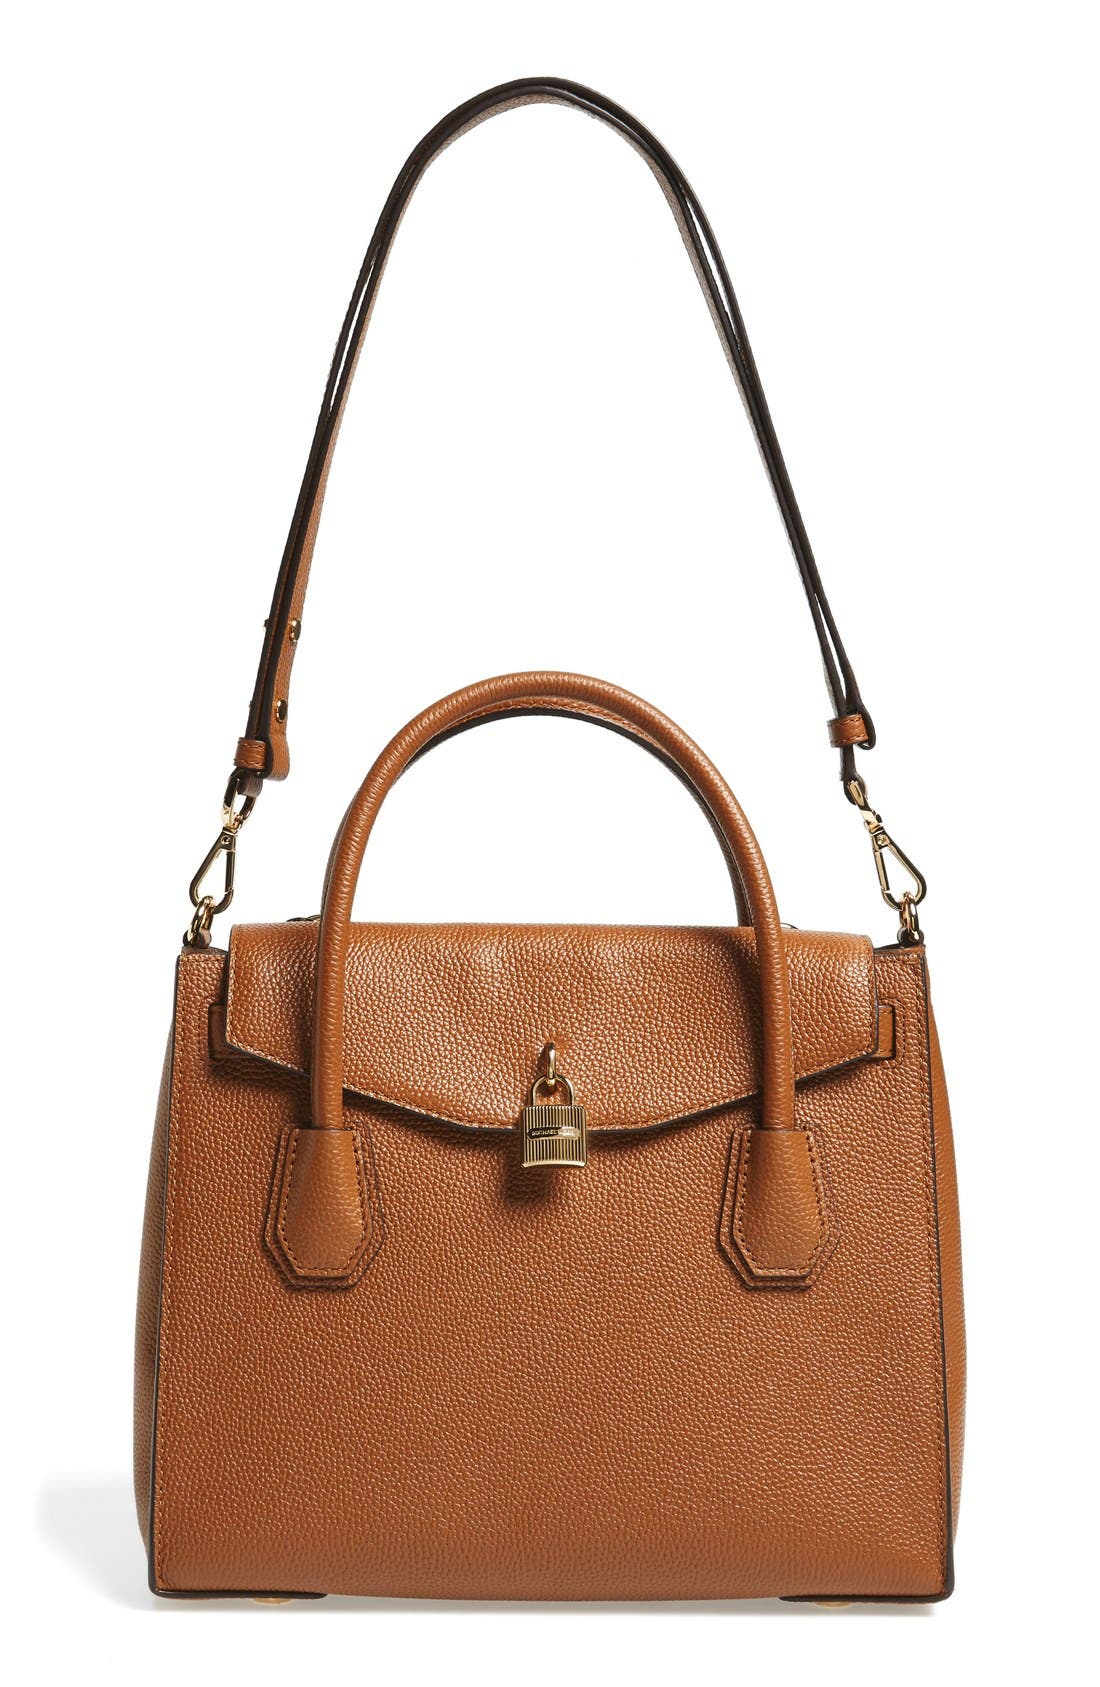 Main Image - MICHAEL Michael Kors Large Mercer All-in-One Leather Satchel